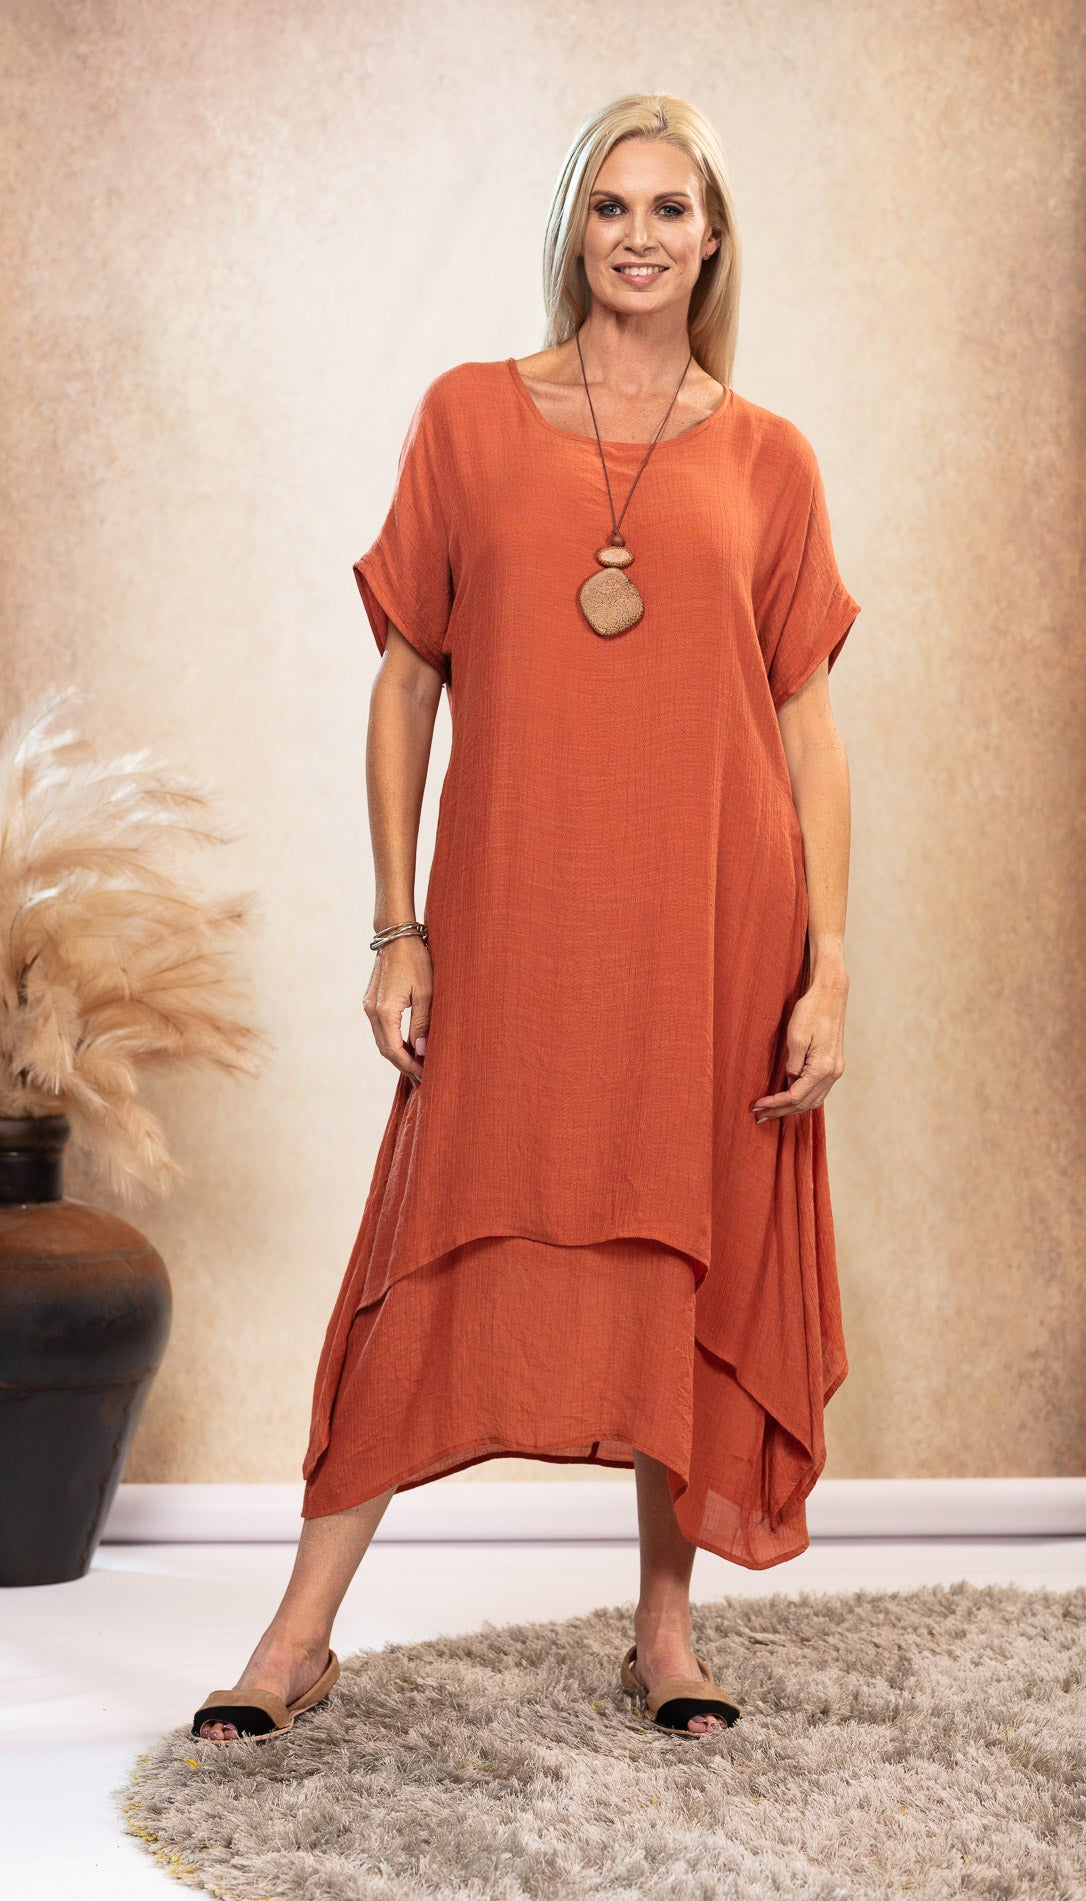 Bamboo Dress in earthy Rust with pockets Australian designed and owned